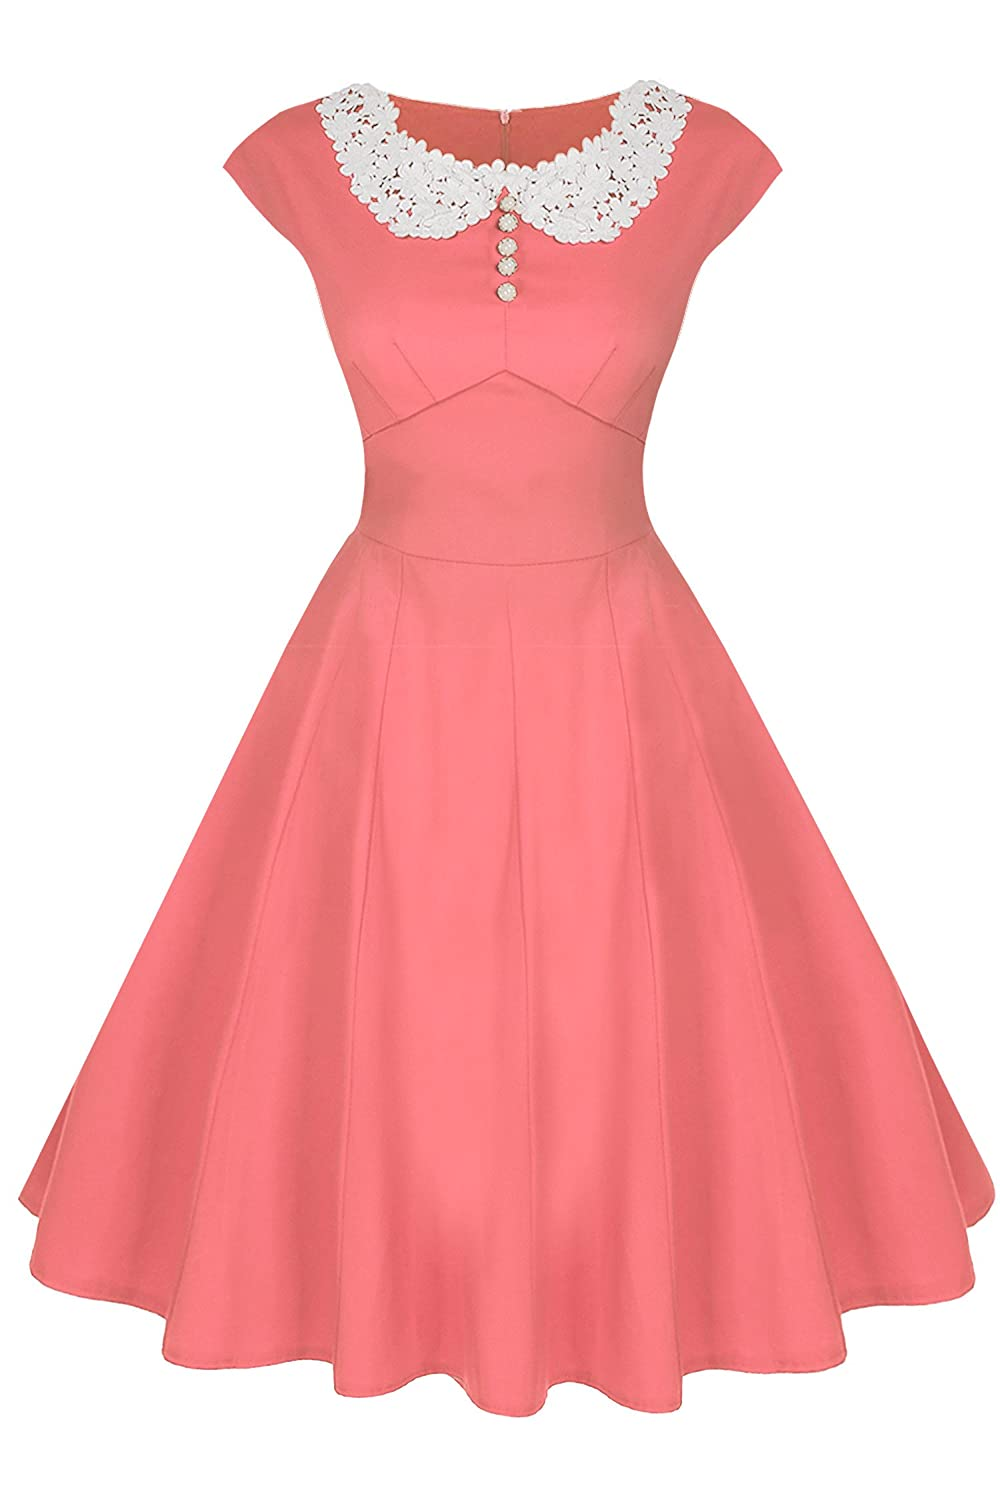 1950s Dresses, 50s Dresses | 1950s Style Dresses ACEVOG Womens Classy Vintage Audrey Hepburn Style 1940s Rockabilly Evening Dress $36.99 AT vintagedancer.com